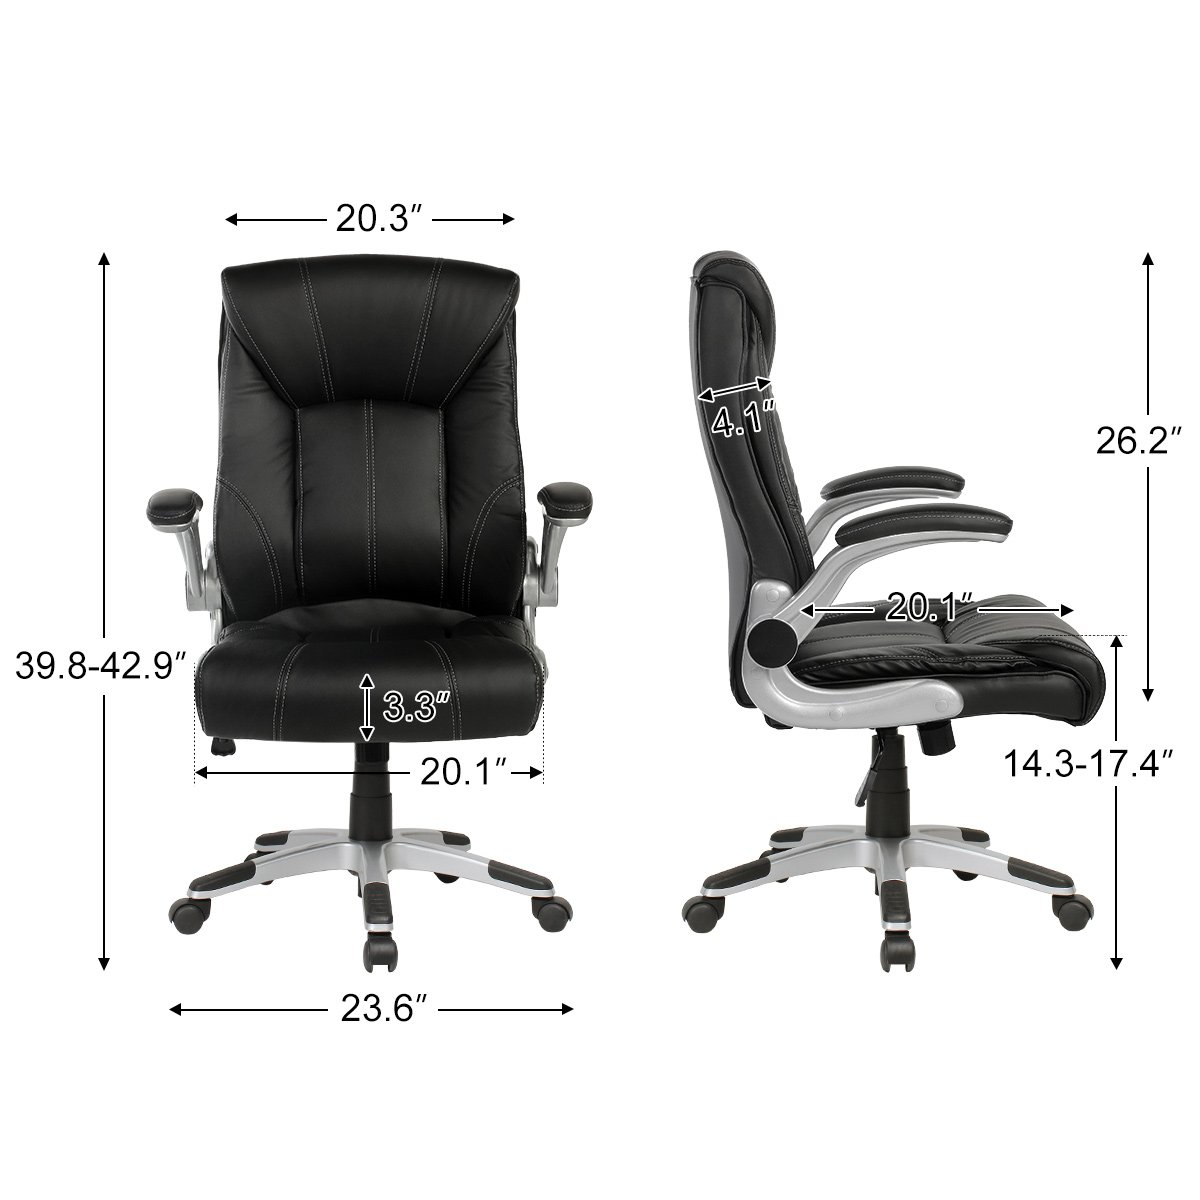 YAMASORO Ergonomic High-Back Executive Office Chair PU Leather Computer Desk Chair with Flip-up Arms and Back Support by YAMASORO (Image #8)